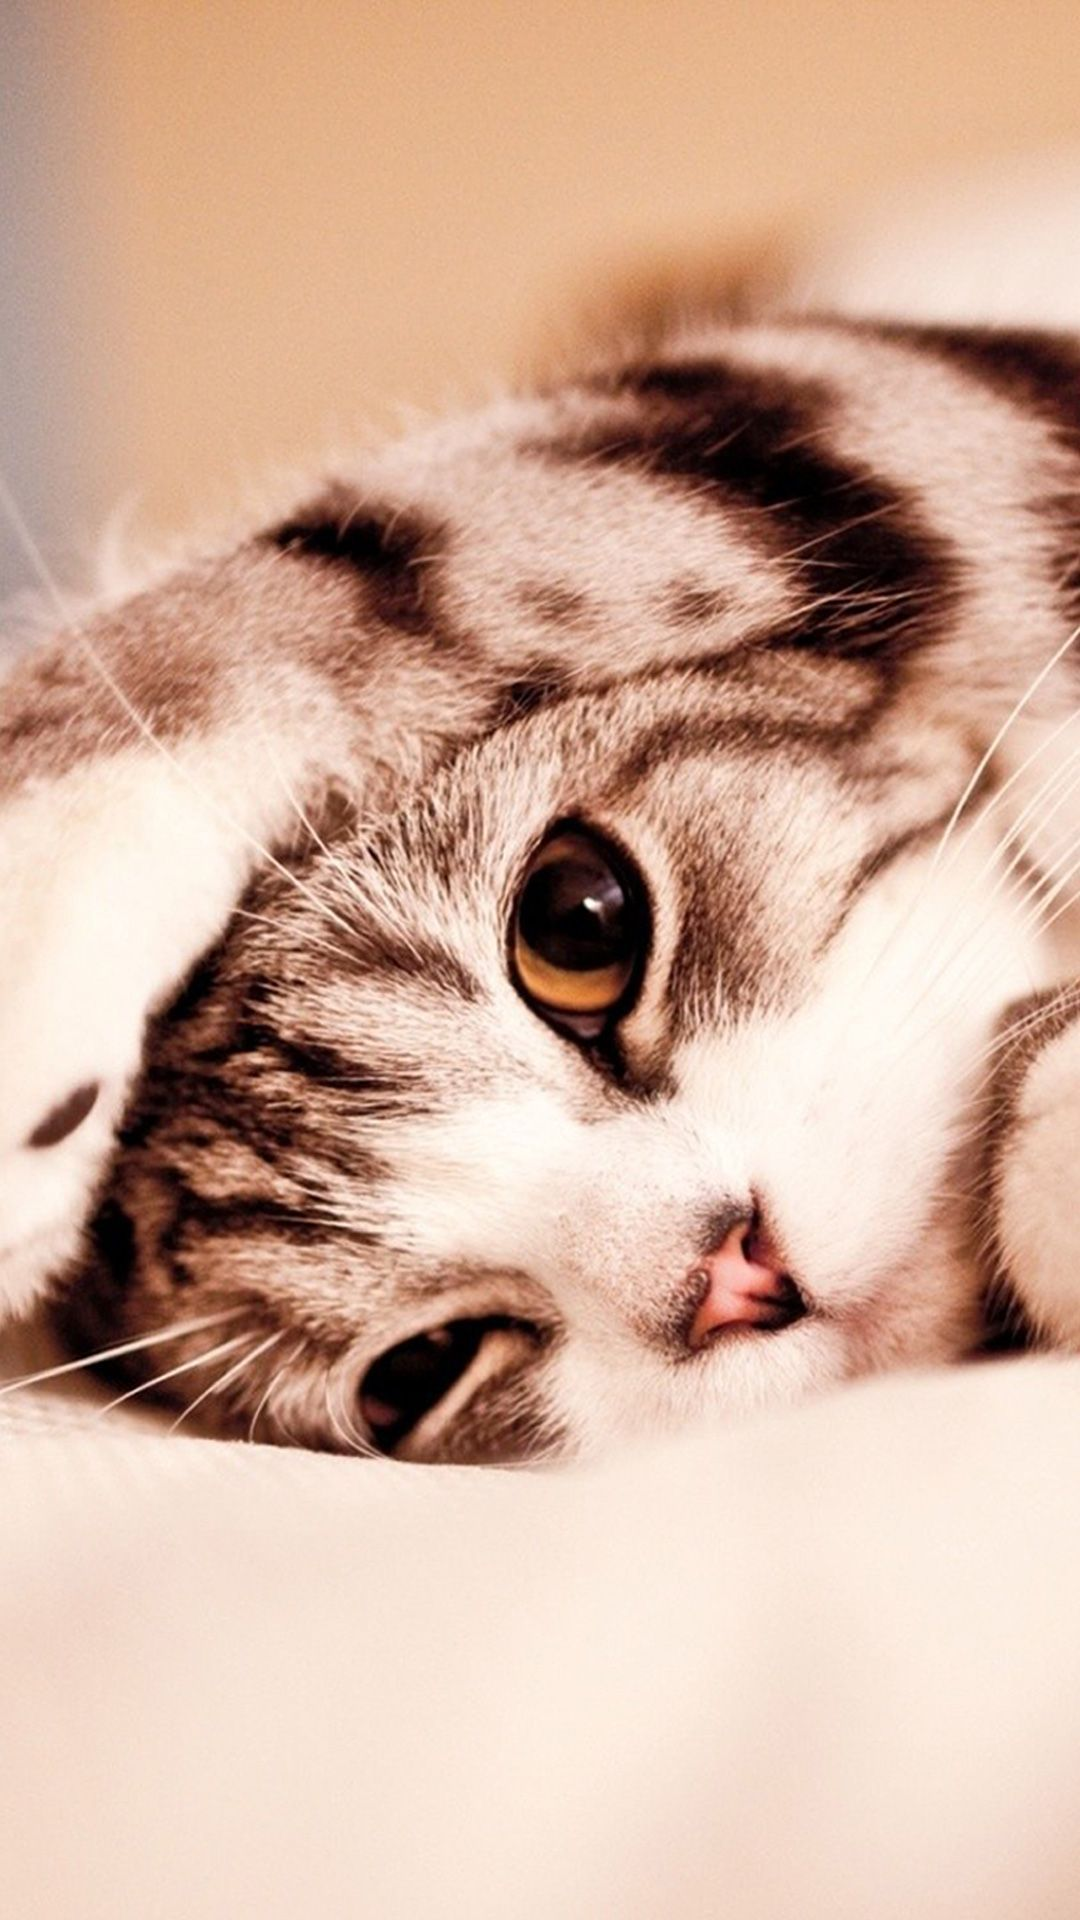 Hd Cute Cat Android Wallpapers Wallpaper Cave